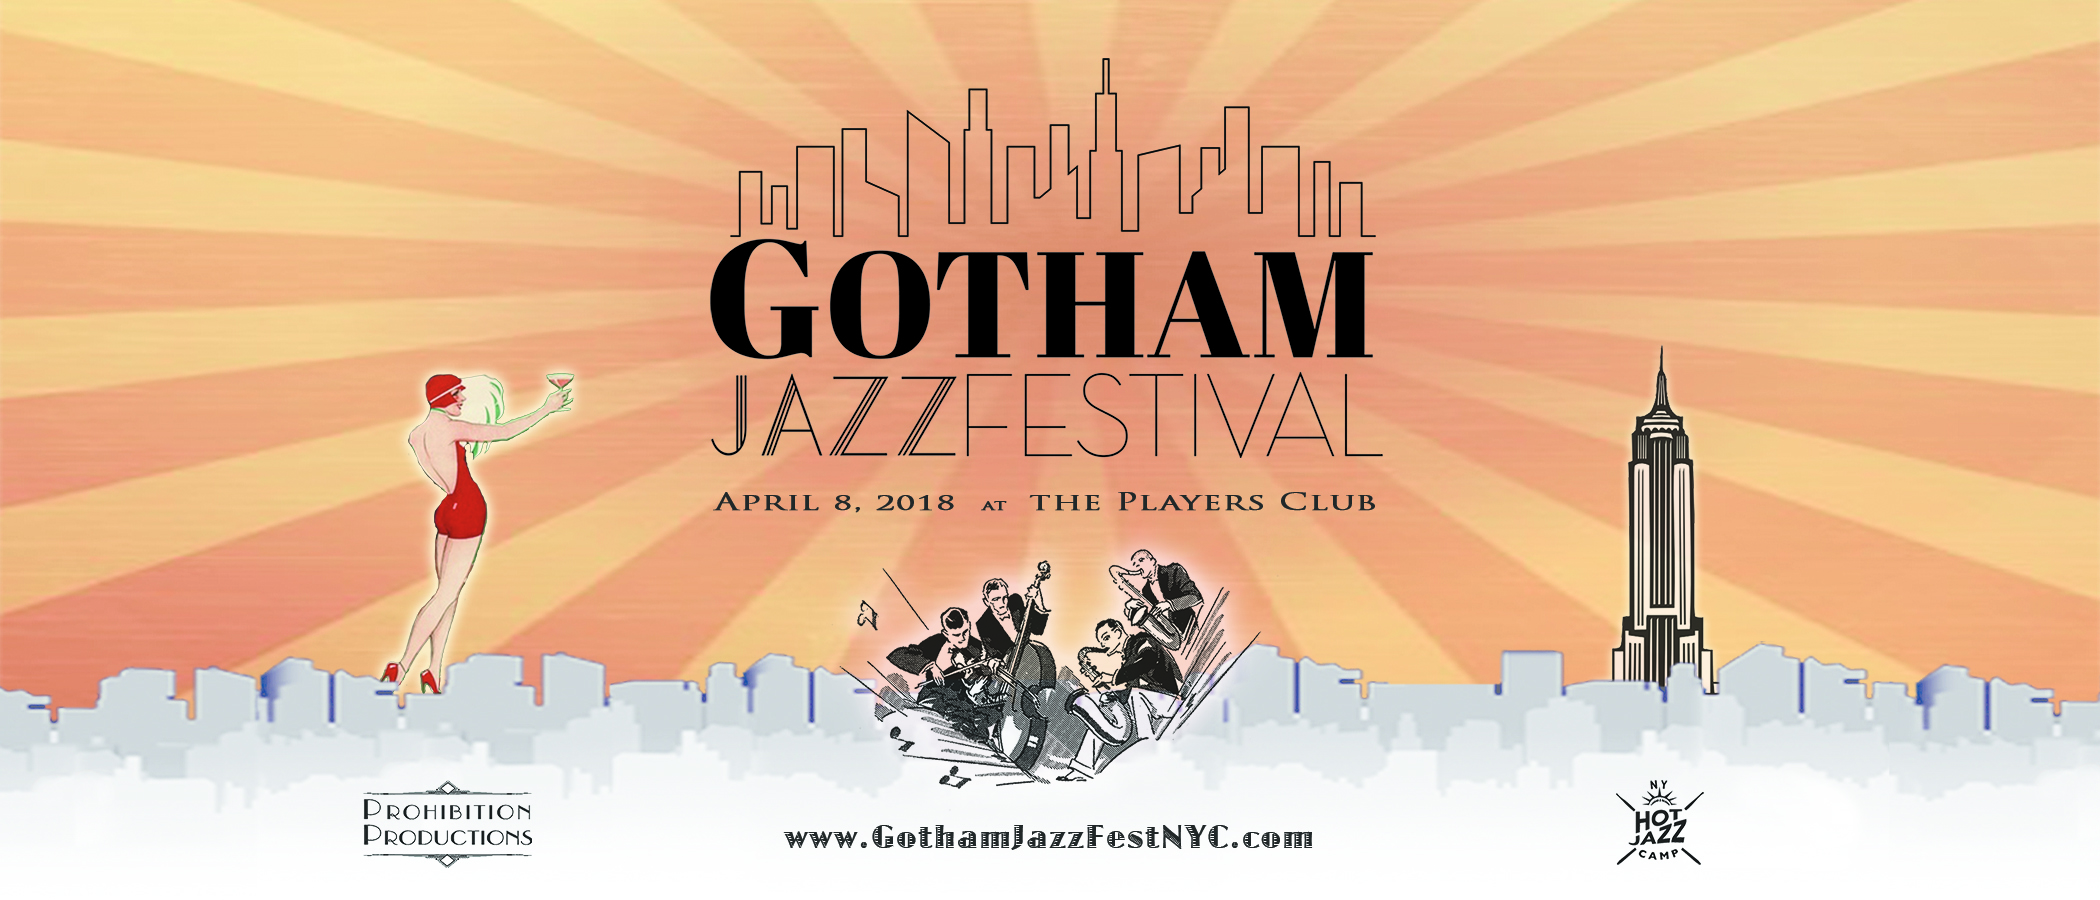 GOTHAM JAZZ FESTIVAL (April 8, 2018)